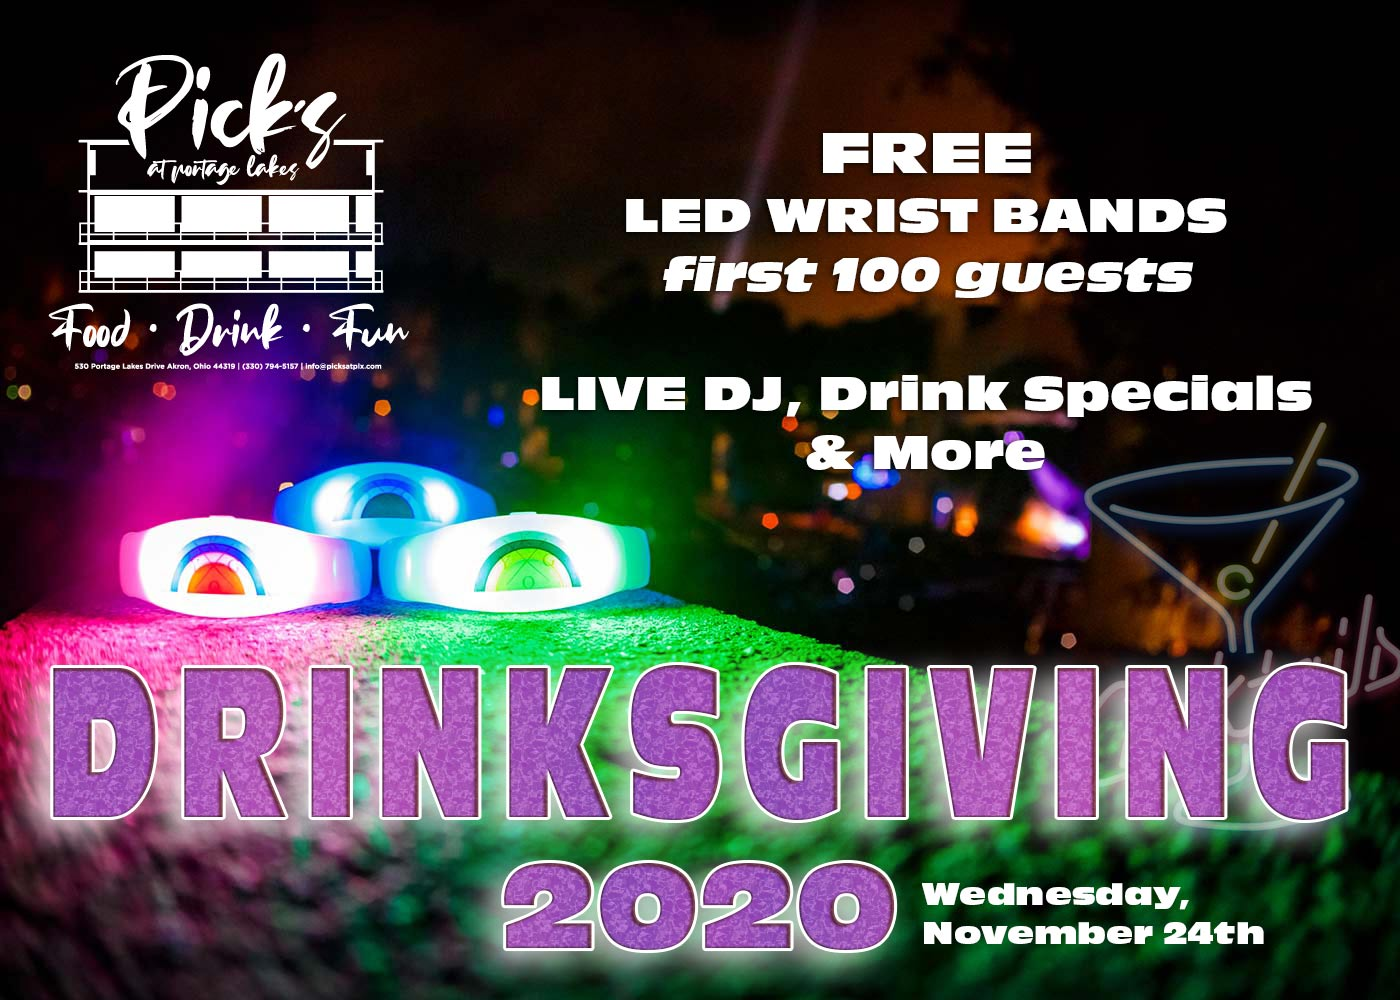 pick's annual drinksgiving party flyer 2020